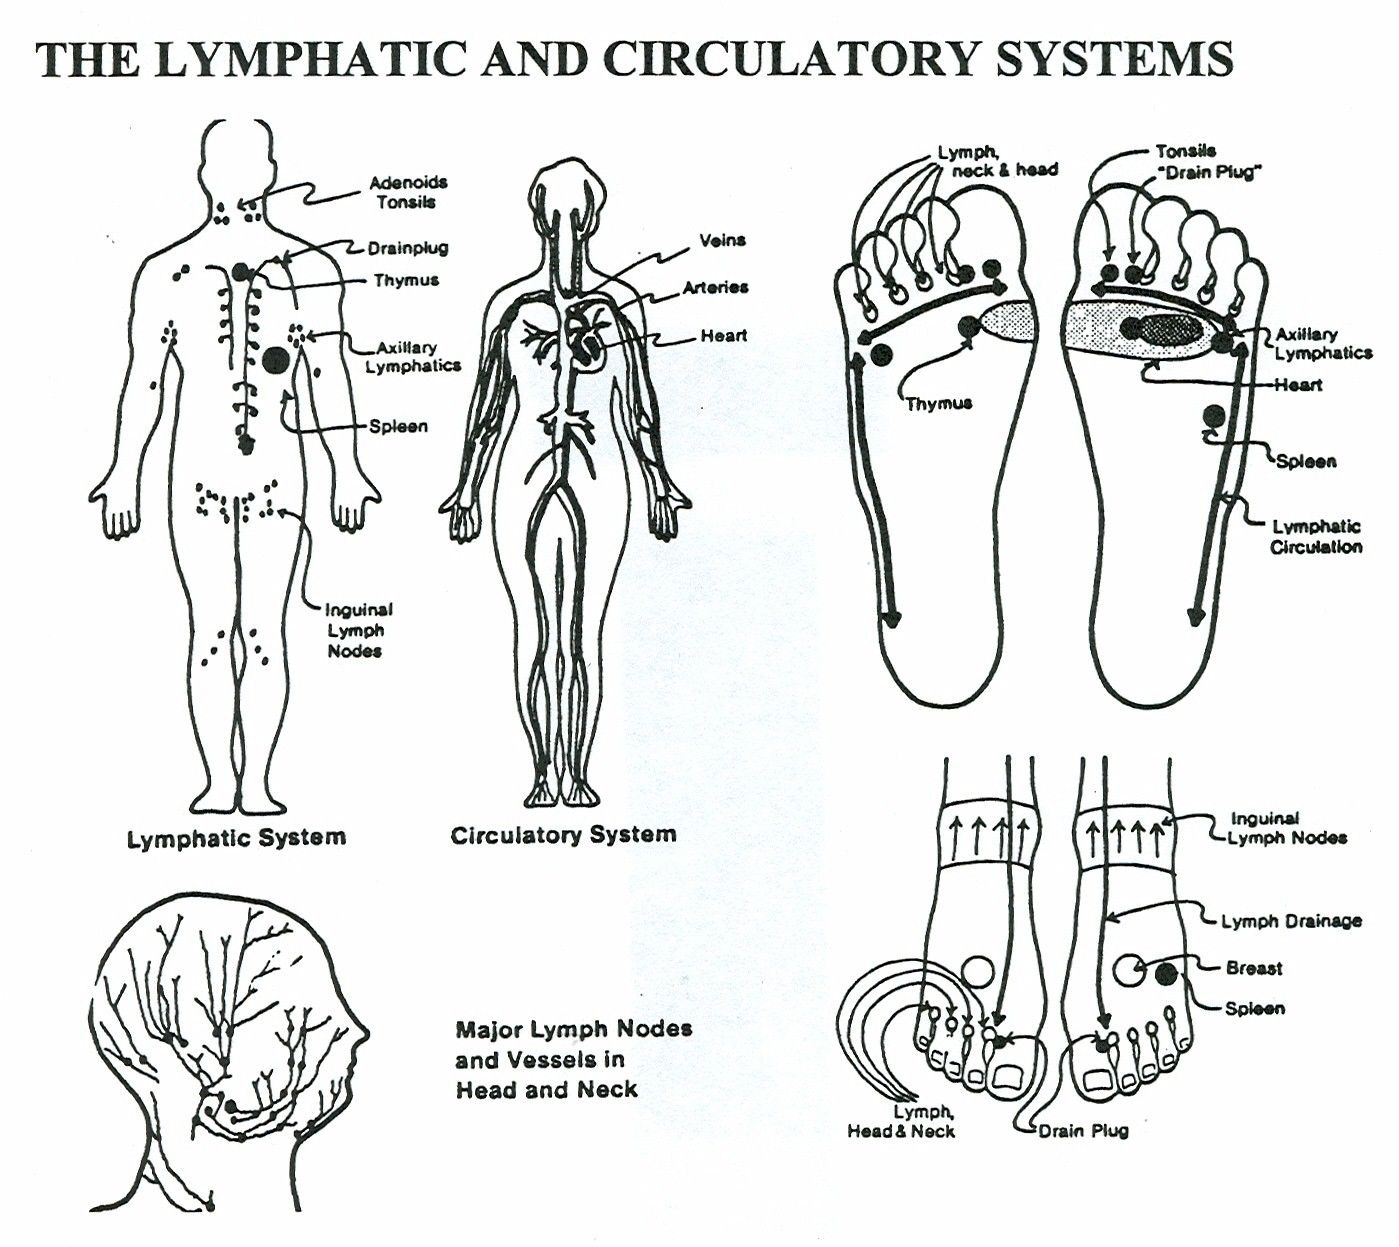 Lymph part of the circulatory system - Lymphatic System All Great Spots To Massage To Get The Lymph Flowing Towards The Heart